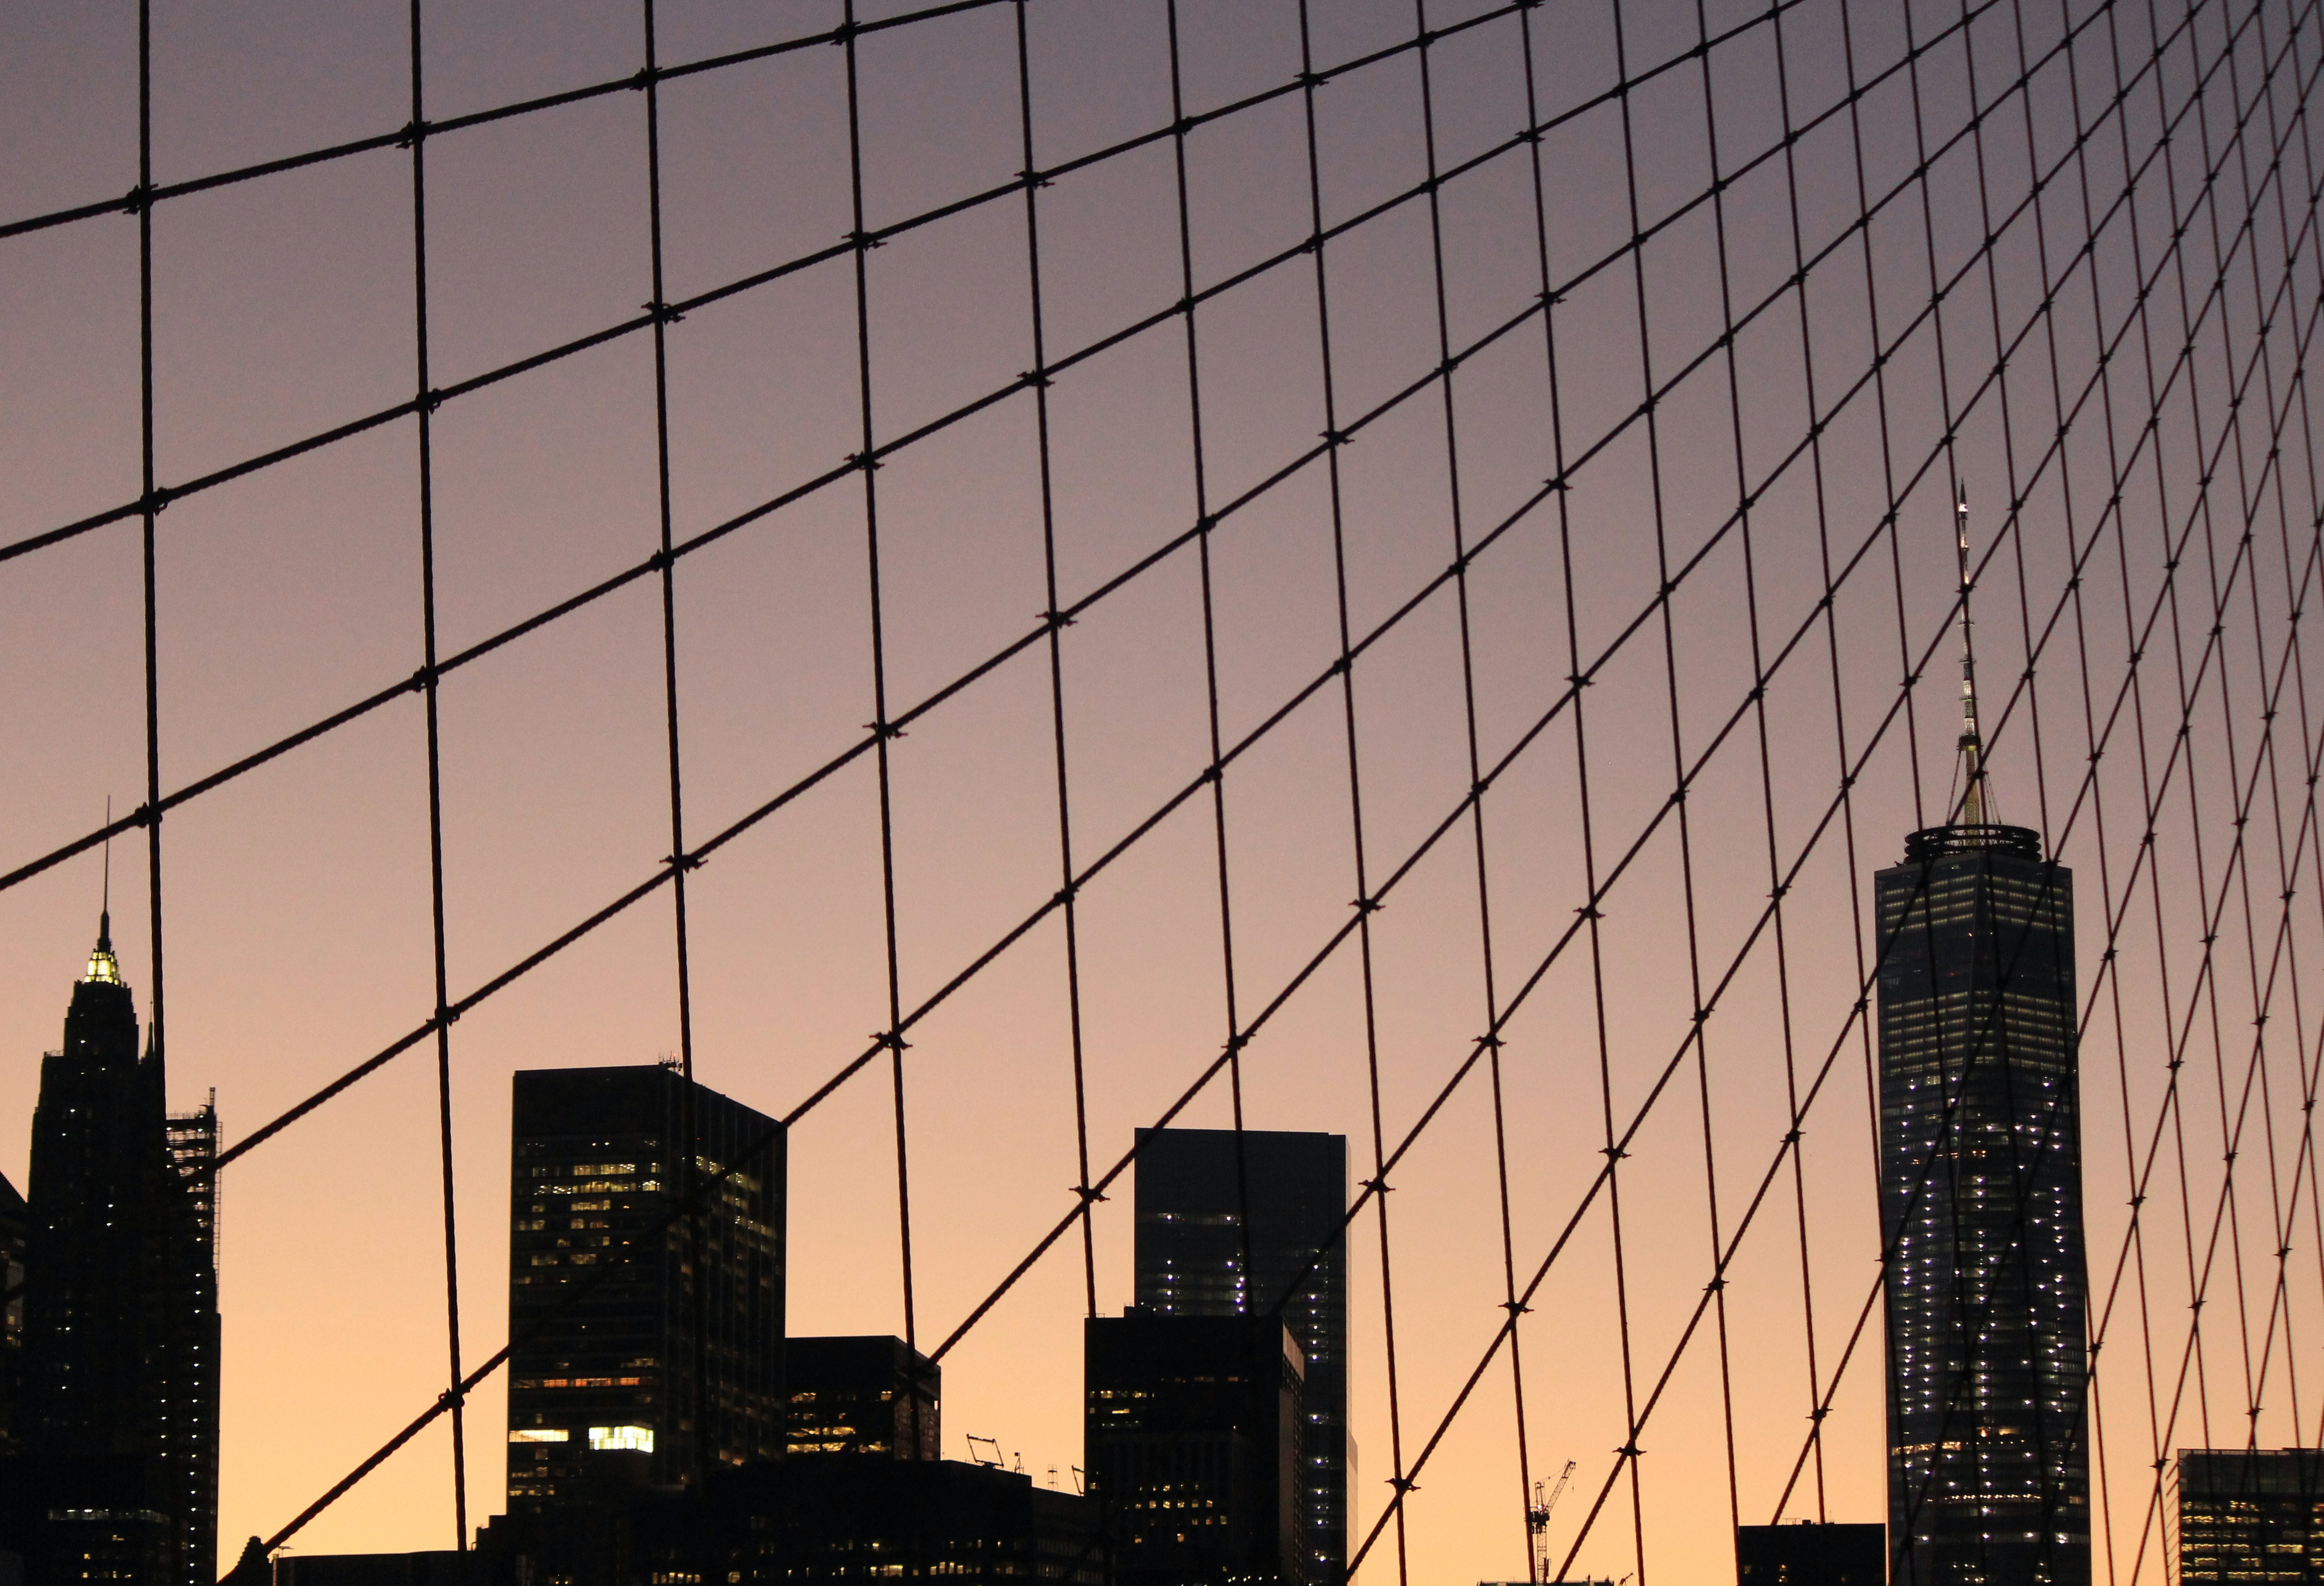 Looking up at the New York City skyline through a chain link fence at sunset